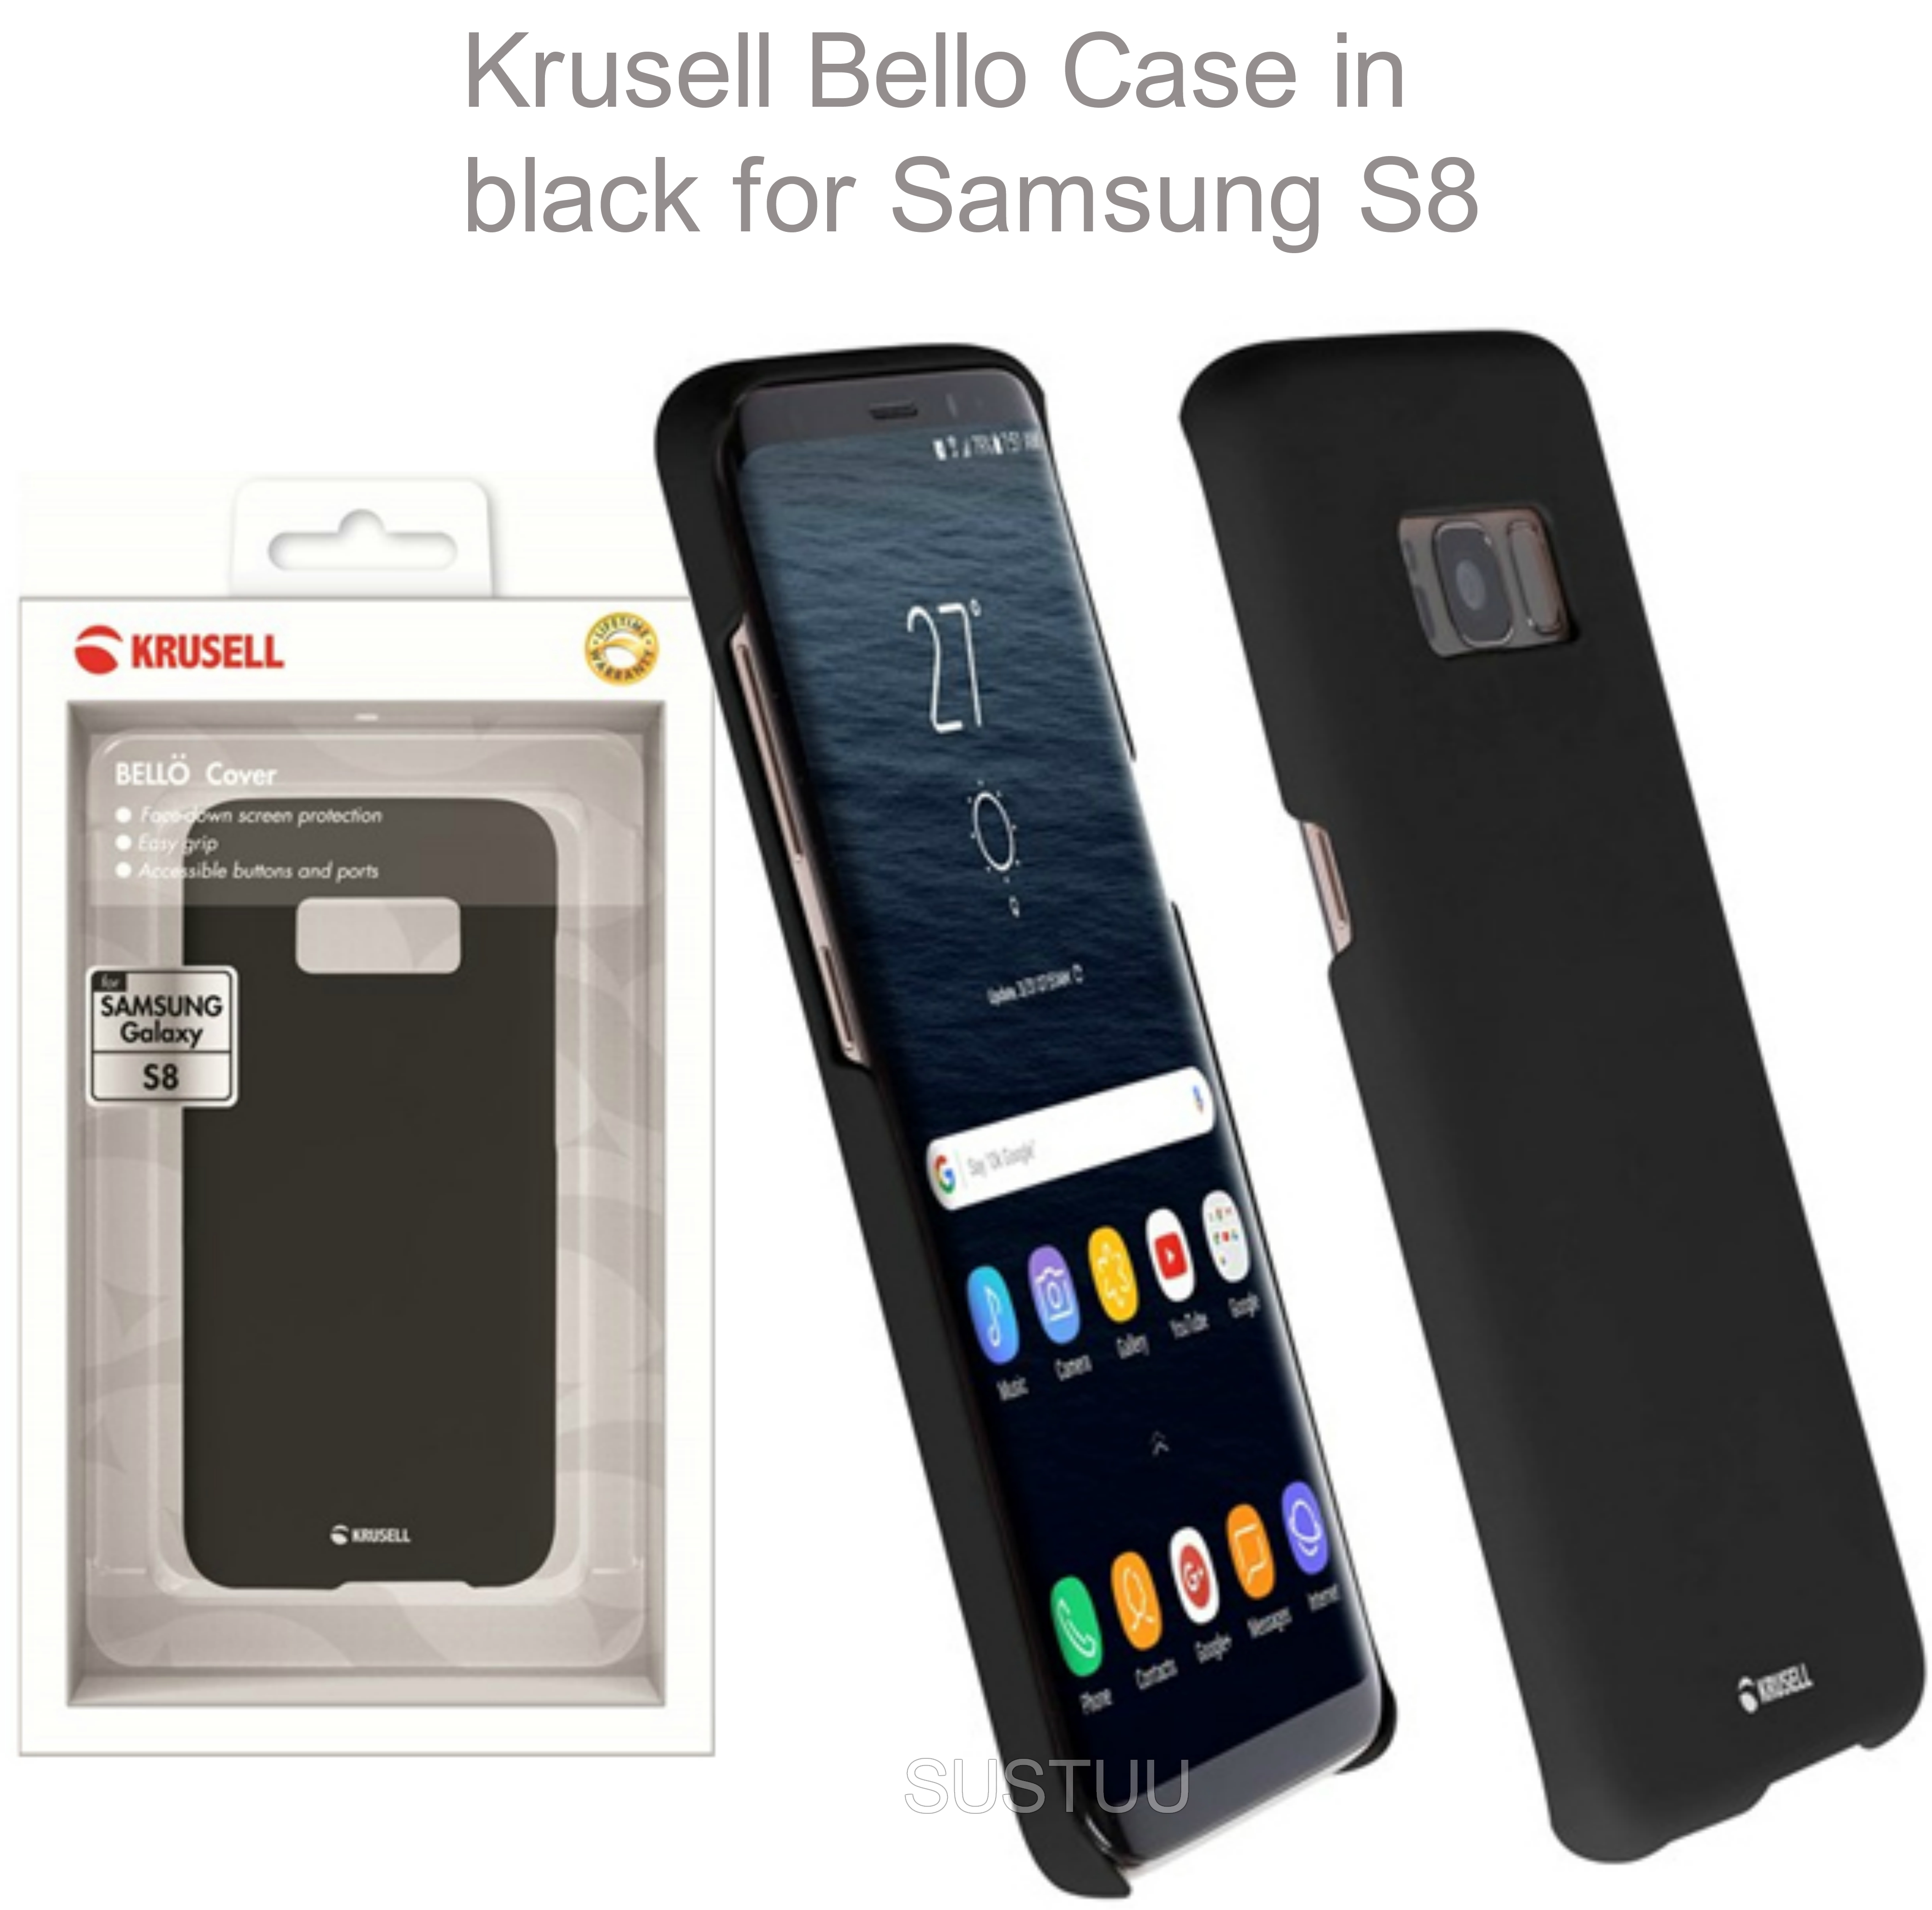 Krusell Bellö Back Case | Protective Mobile Phone Cover | For Samsung Galaxy S8 | Black